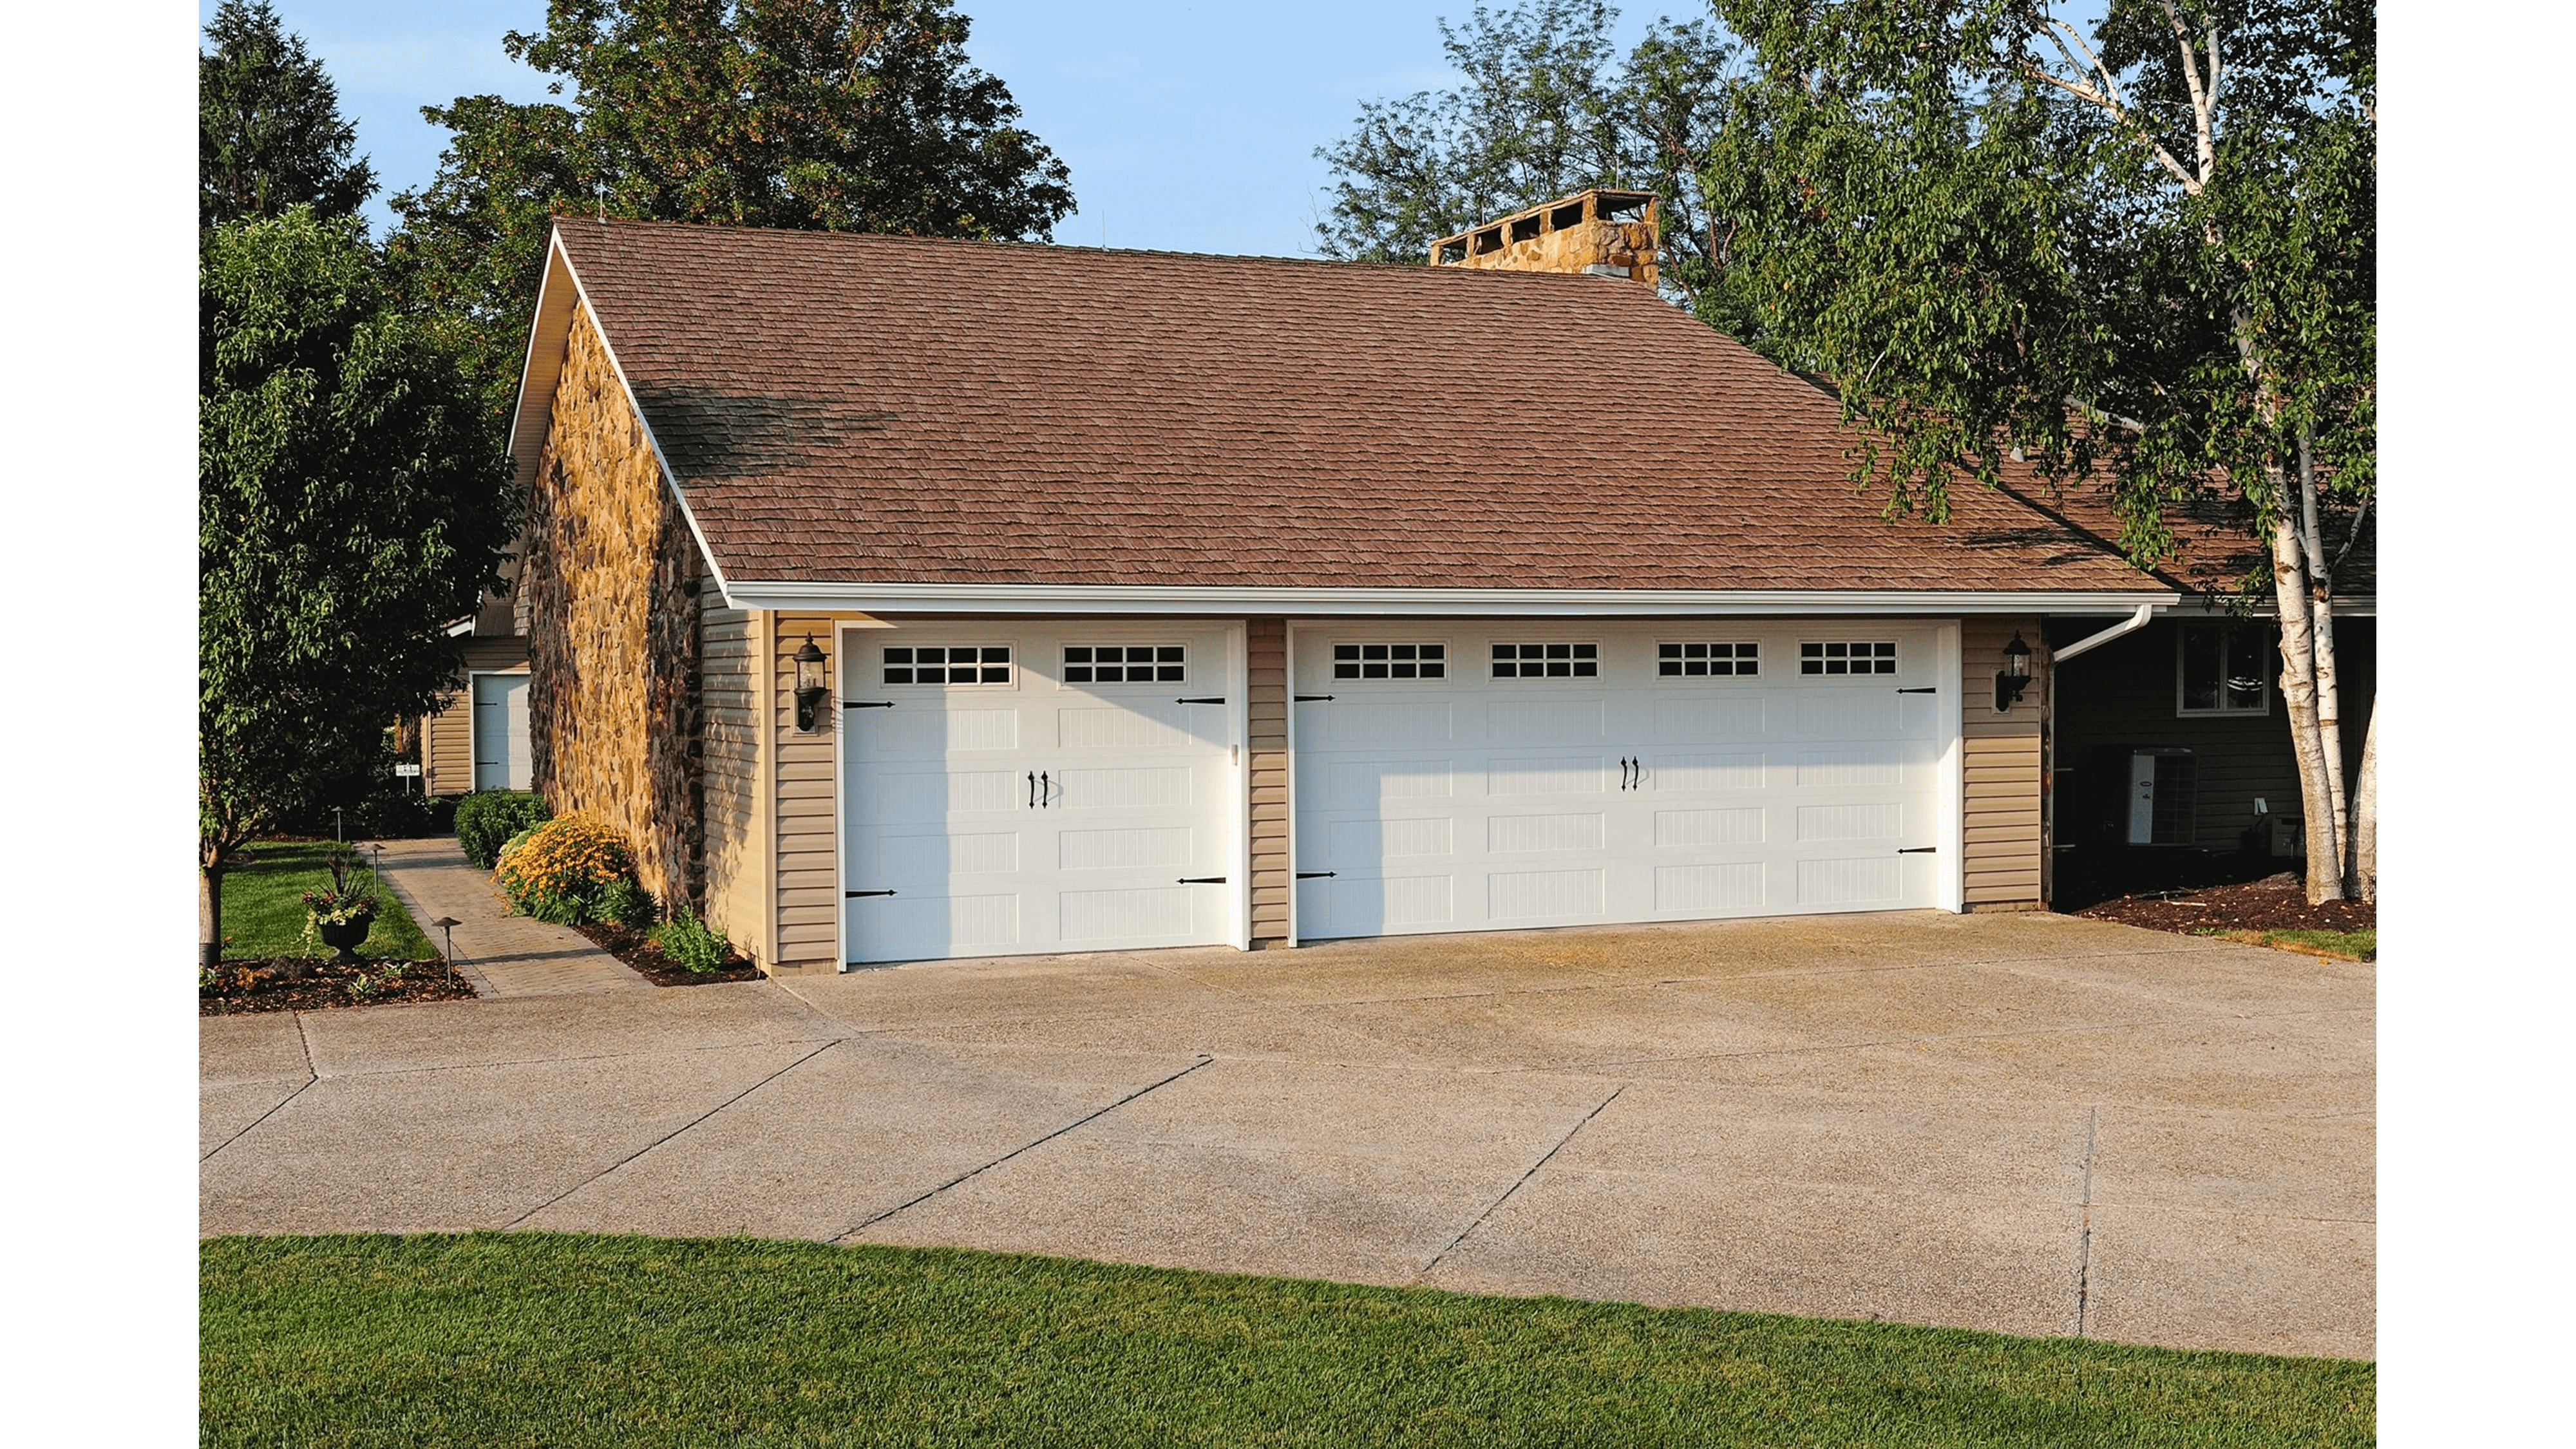 Carriage House Garage Doors with Windows